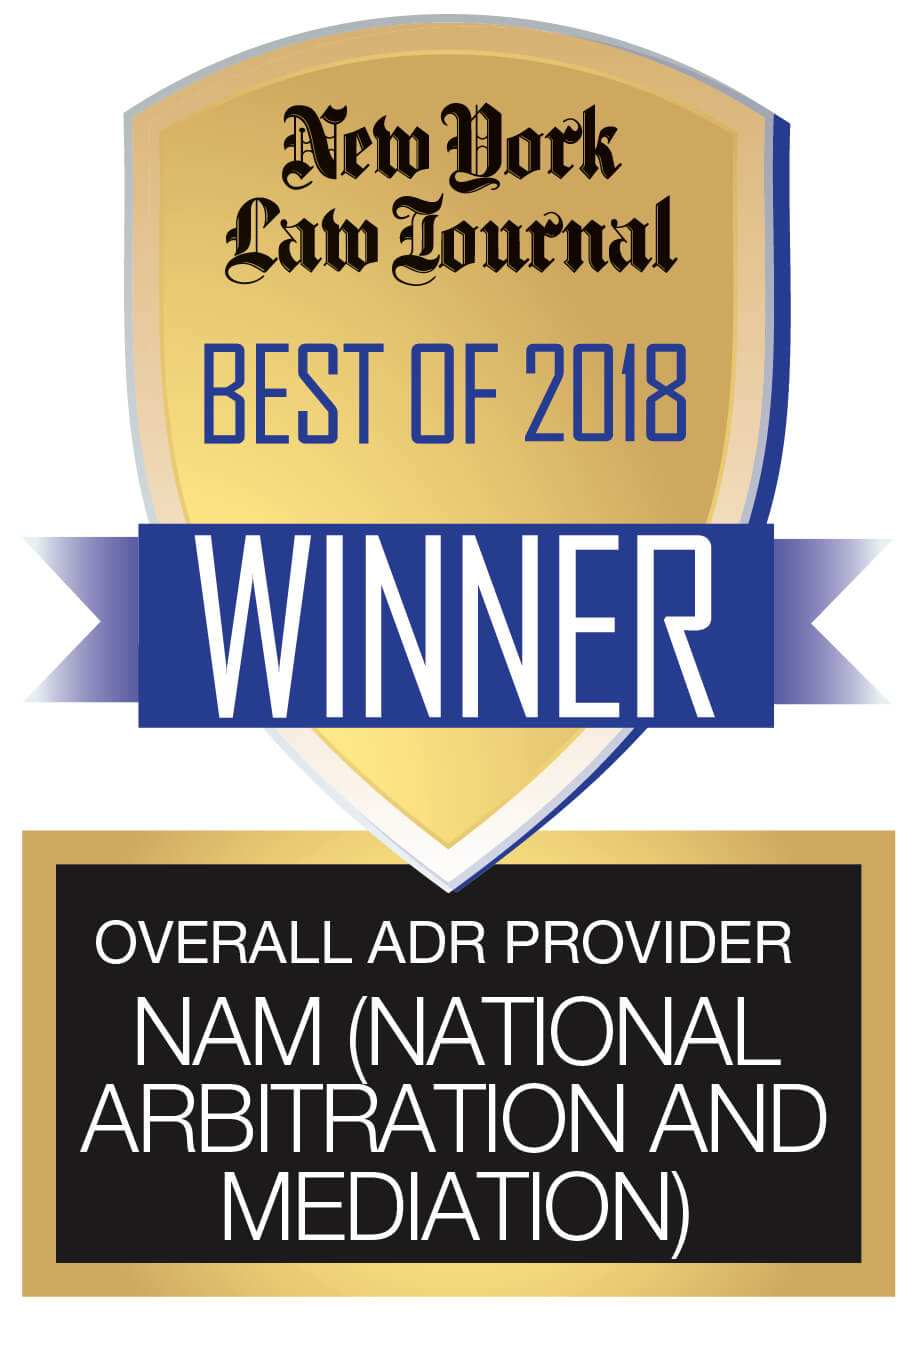 THE NEW YORK LAW JOURNAL READERS HAVE SPOKEN  NAM VOTED #1